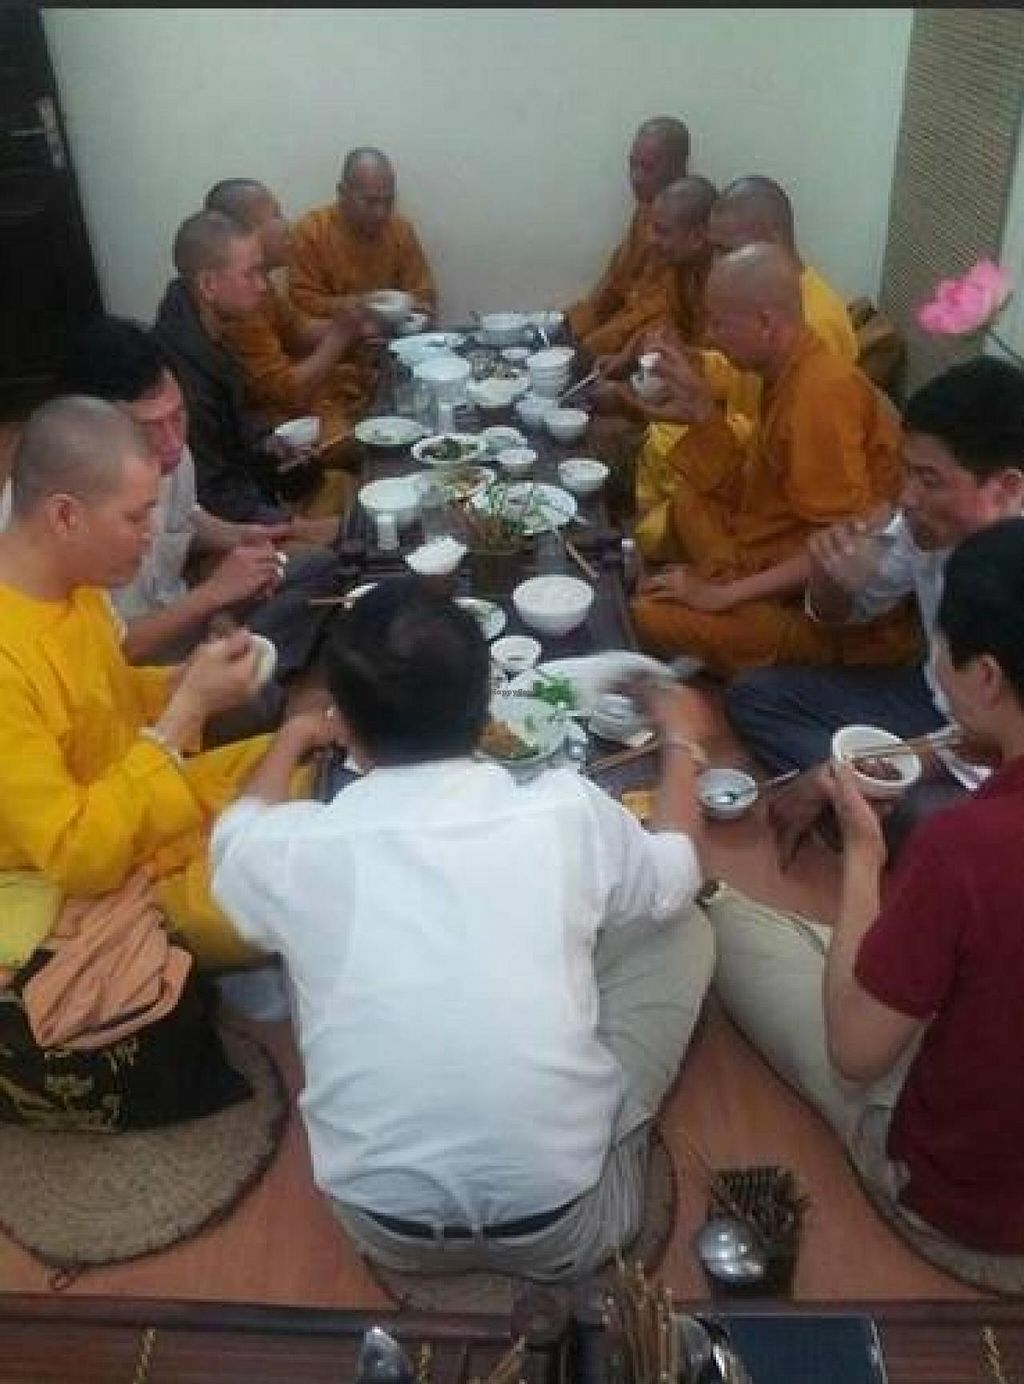 """Photo of An Phuc  by <a href=""""/members/profile/Ngoc%20Nga"""">Ngoc Nga</a> <br/>My friends anh monks have lunch at An Phúc   <br/> June 30, 2014  - <a href='/contact/abuse/image/32126/72974'>Report</a>"""